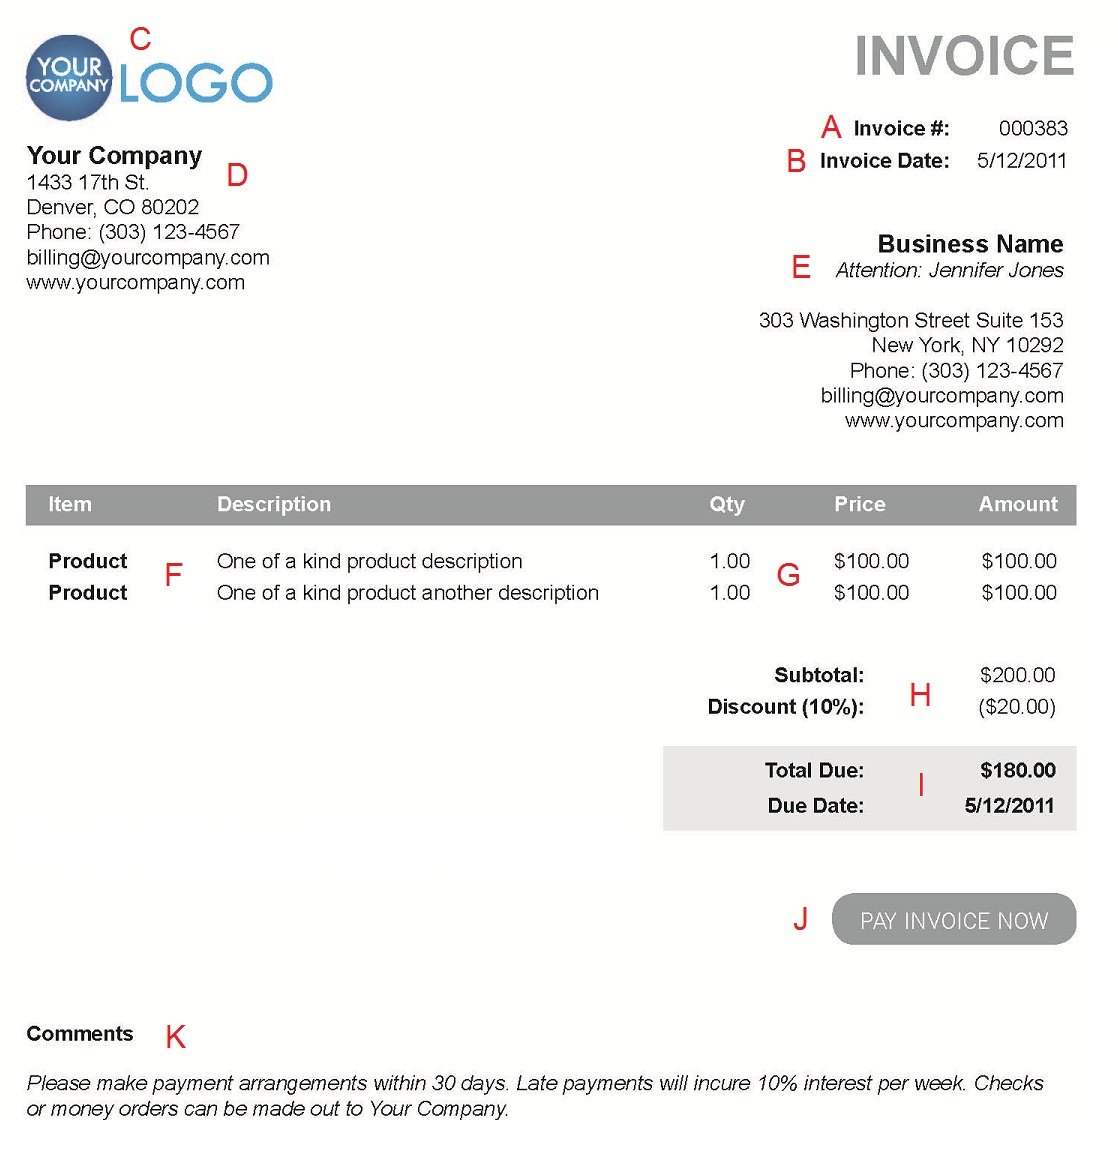 Darkfaderus  Winsome The  Different Sections Of An Electronic Payment Invoice With Foxy A  With Delightful Bmw Dealer Invoice Also Format Of Proforma Invoice In Addition Mazda Invoice And Good Invoice Software As Well As Project Invoice Additionally Invoice Fields From Paysimplecom With Darkfaderus  Foxy The  Different Sections Of An Electronic Payment Invoice With Delightful A  And Winsome Bmw Dealer Invoice Also Format Of Proforma Invoice In Addition Mazda Invoice From Paysimplecom